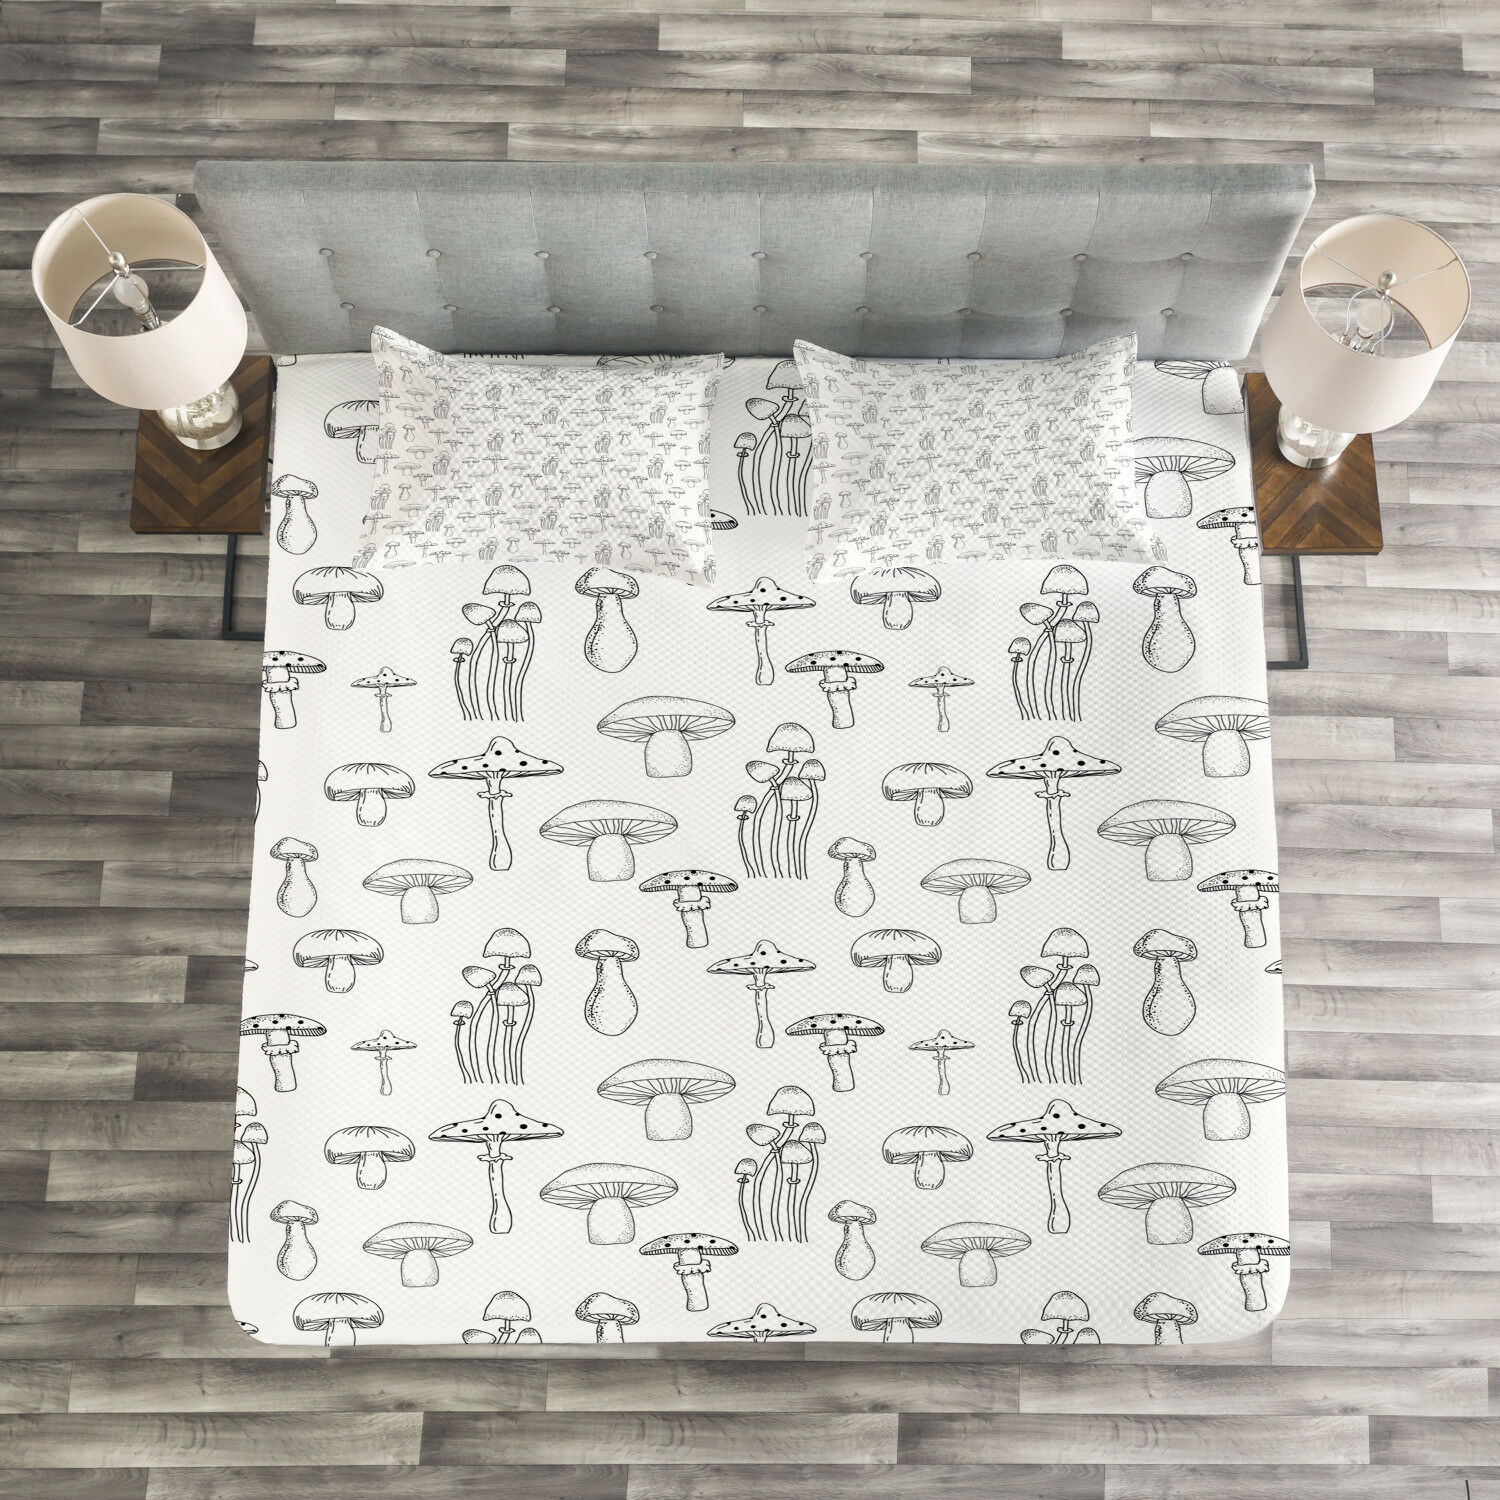 Mushroom Quilted Bedspread & Pillow Shams Set, Monochrome Doodle Art Print